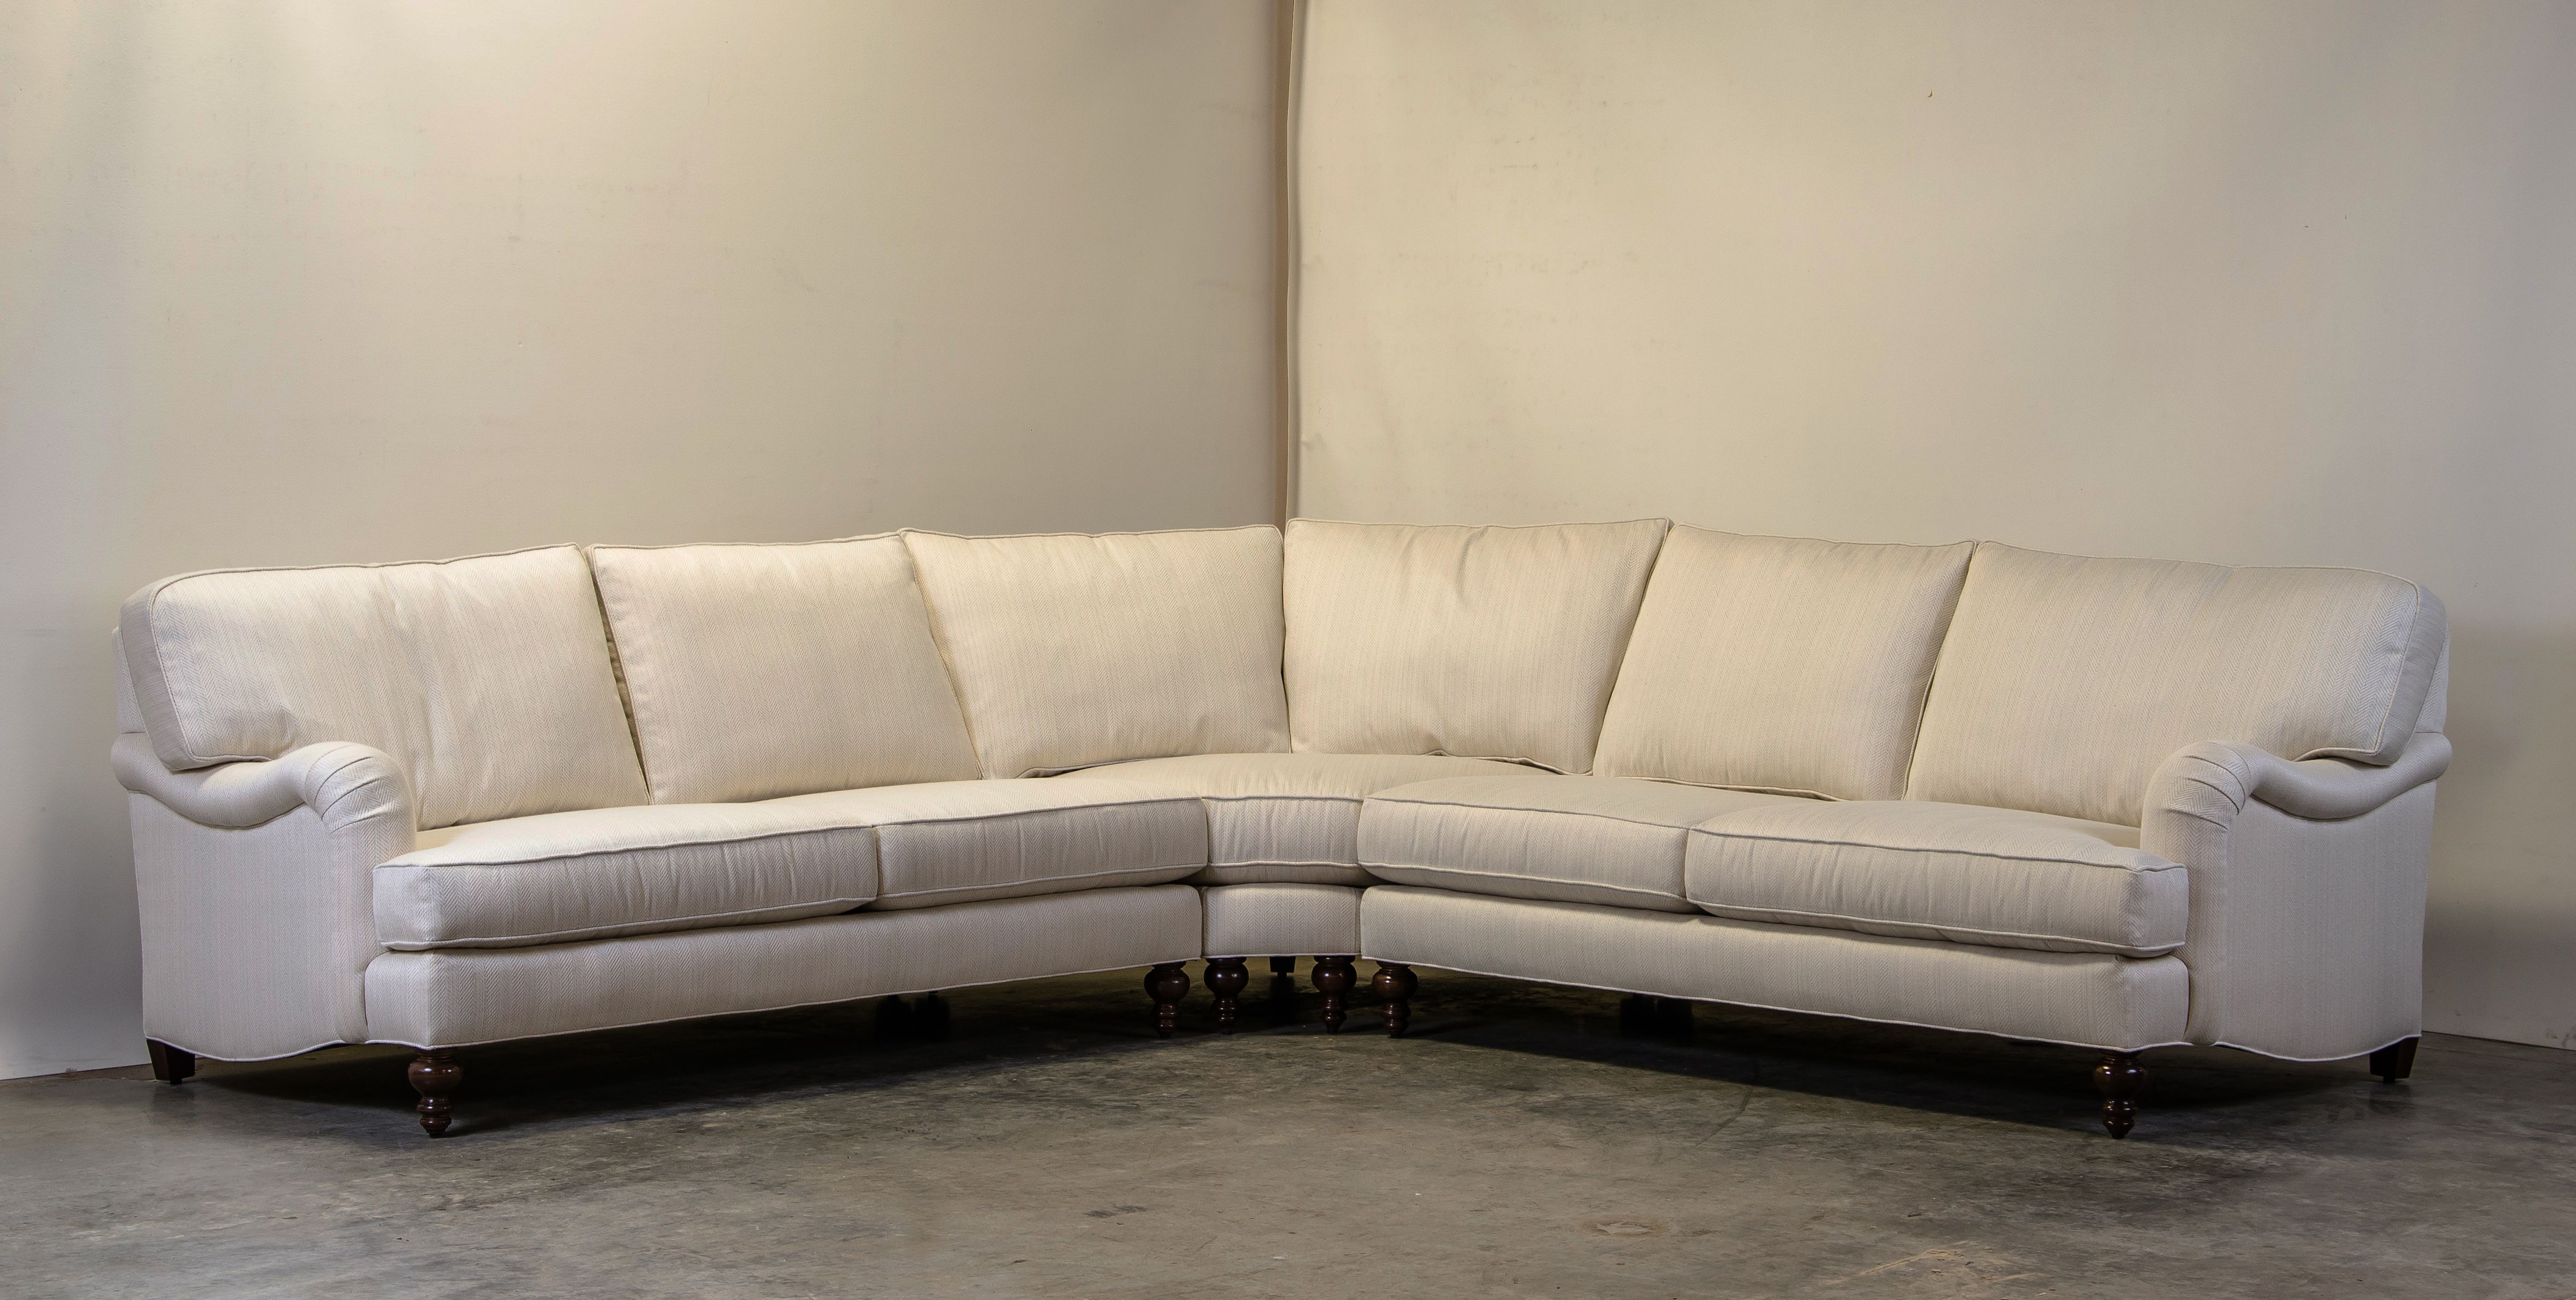 COCOCO's English Arm Sectional in Sunbrella Posh Parchment